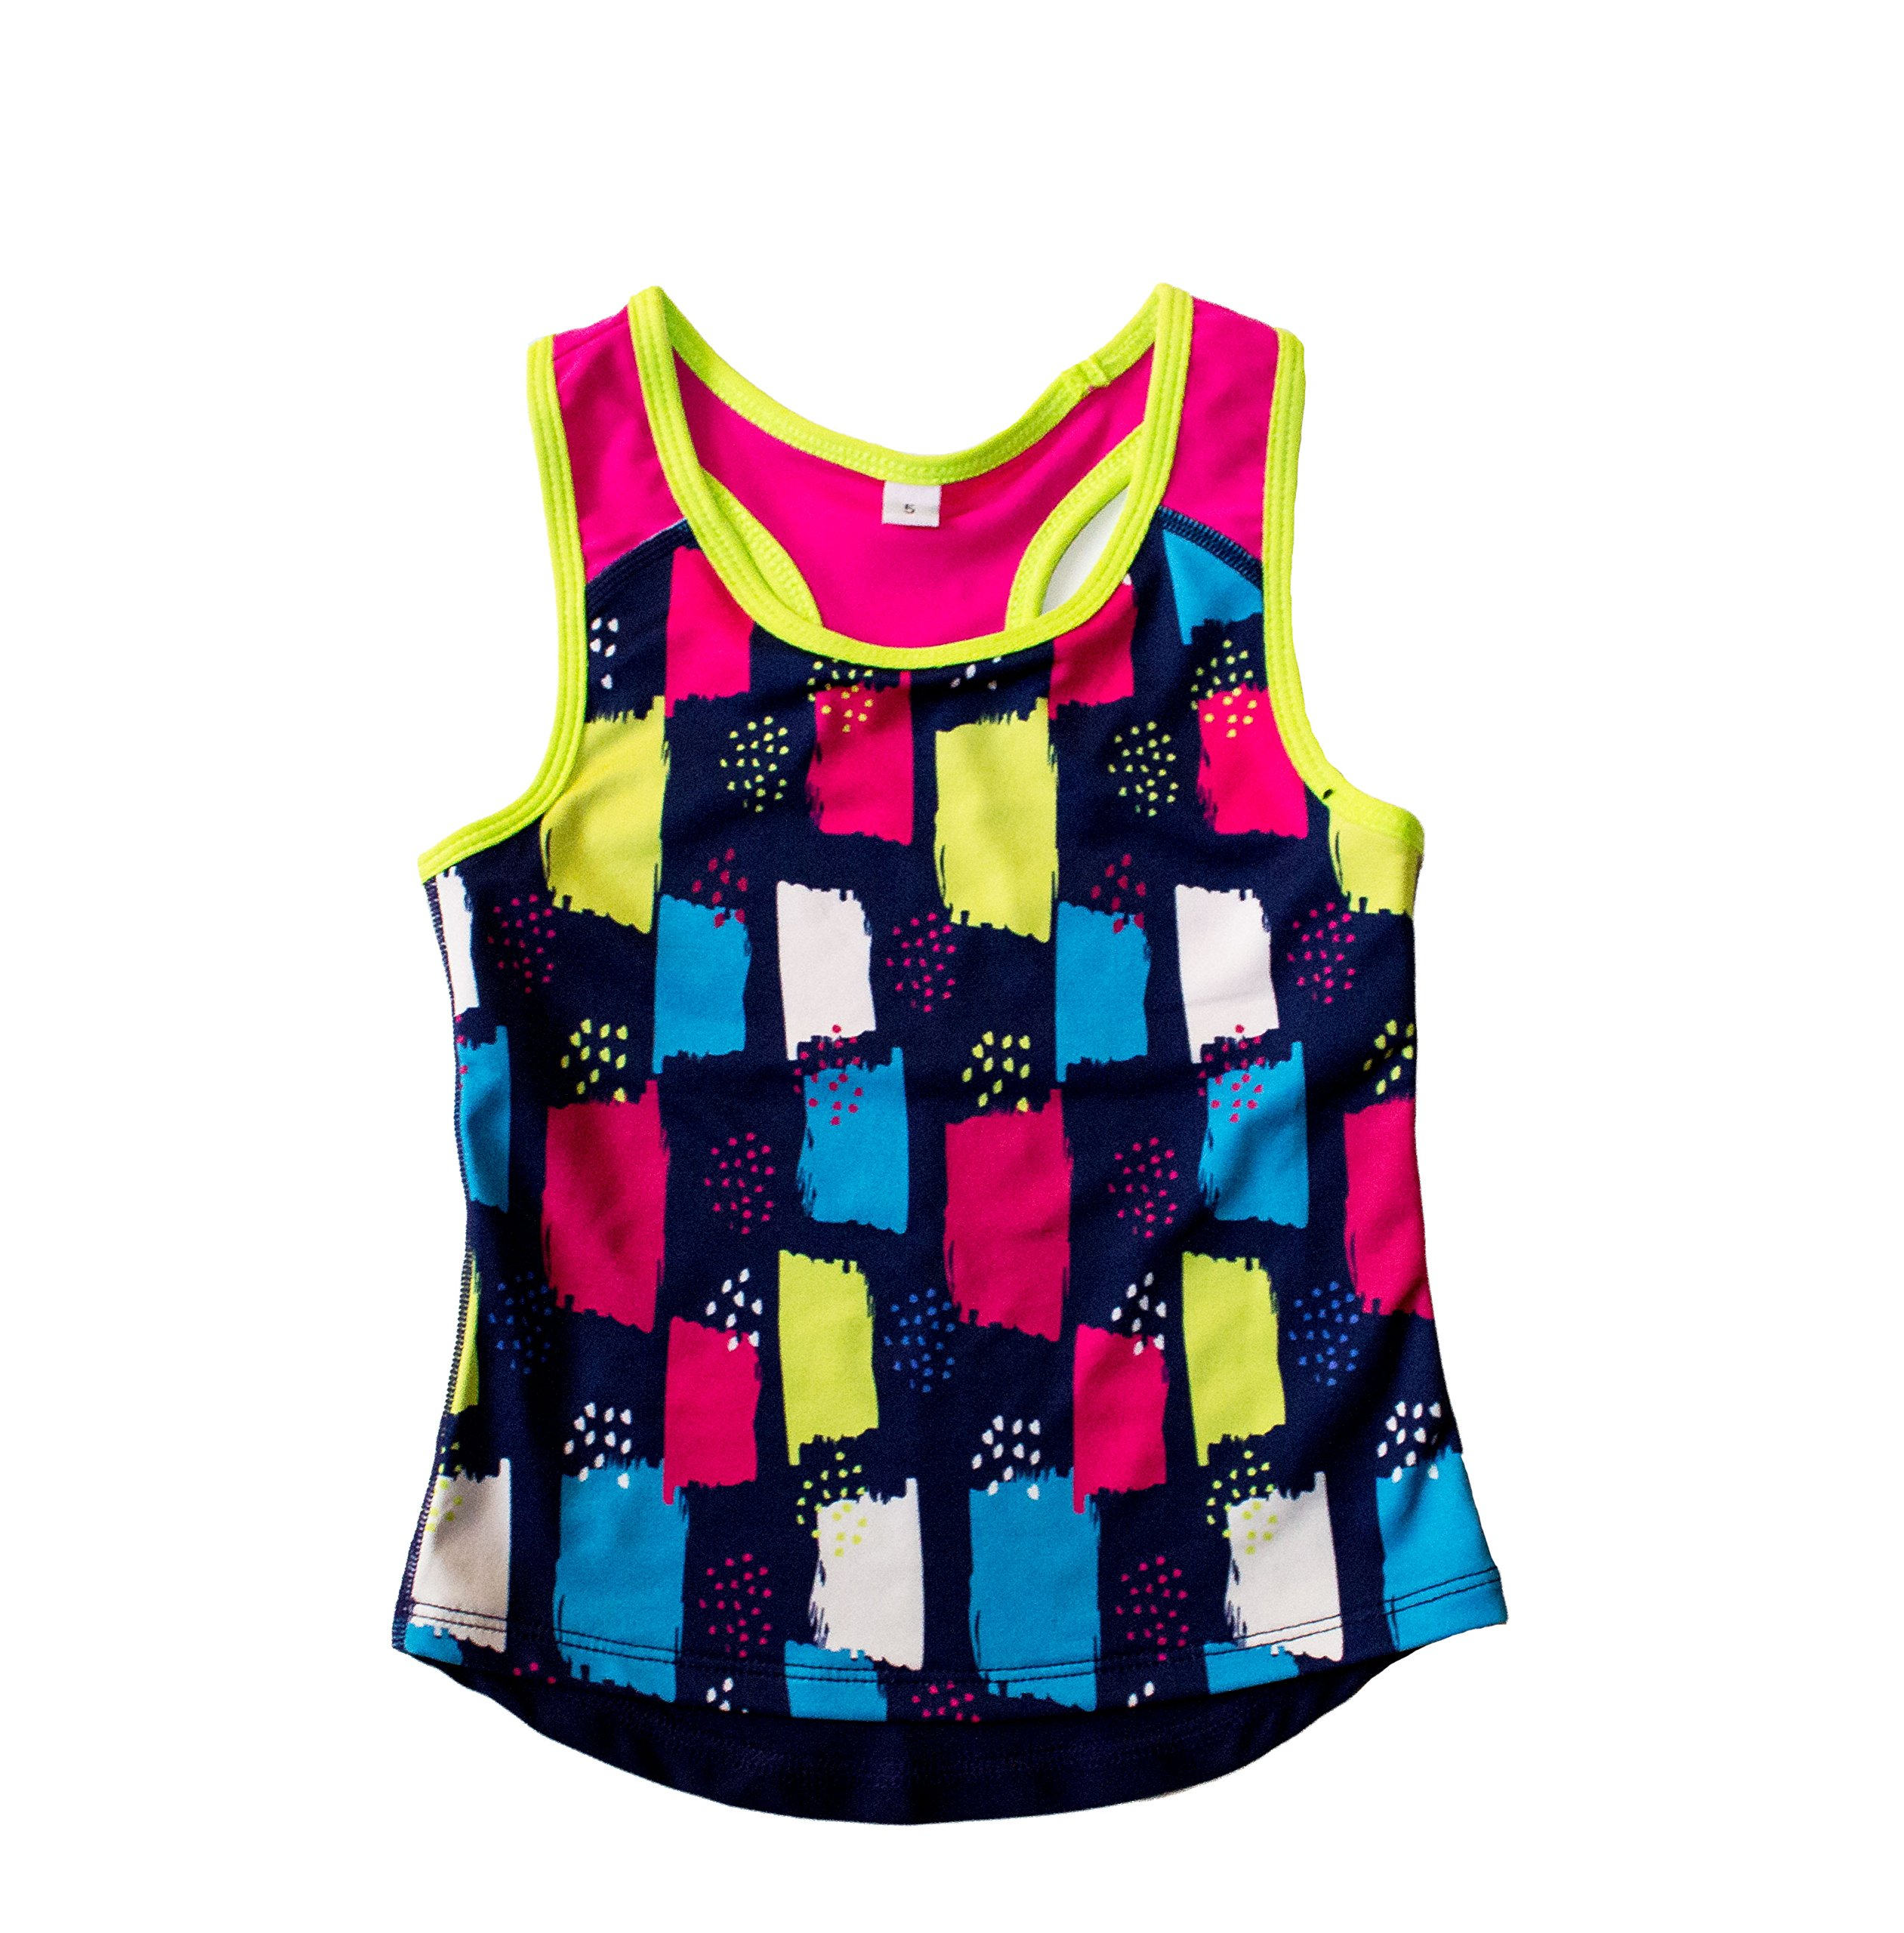 Good Lad Youngsport Girls Activewear Mulicolor Racer Back Tank Tops (14/16, Printed)